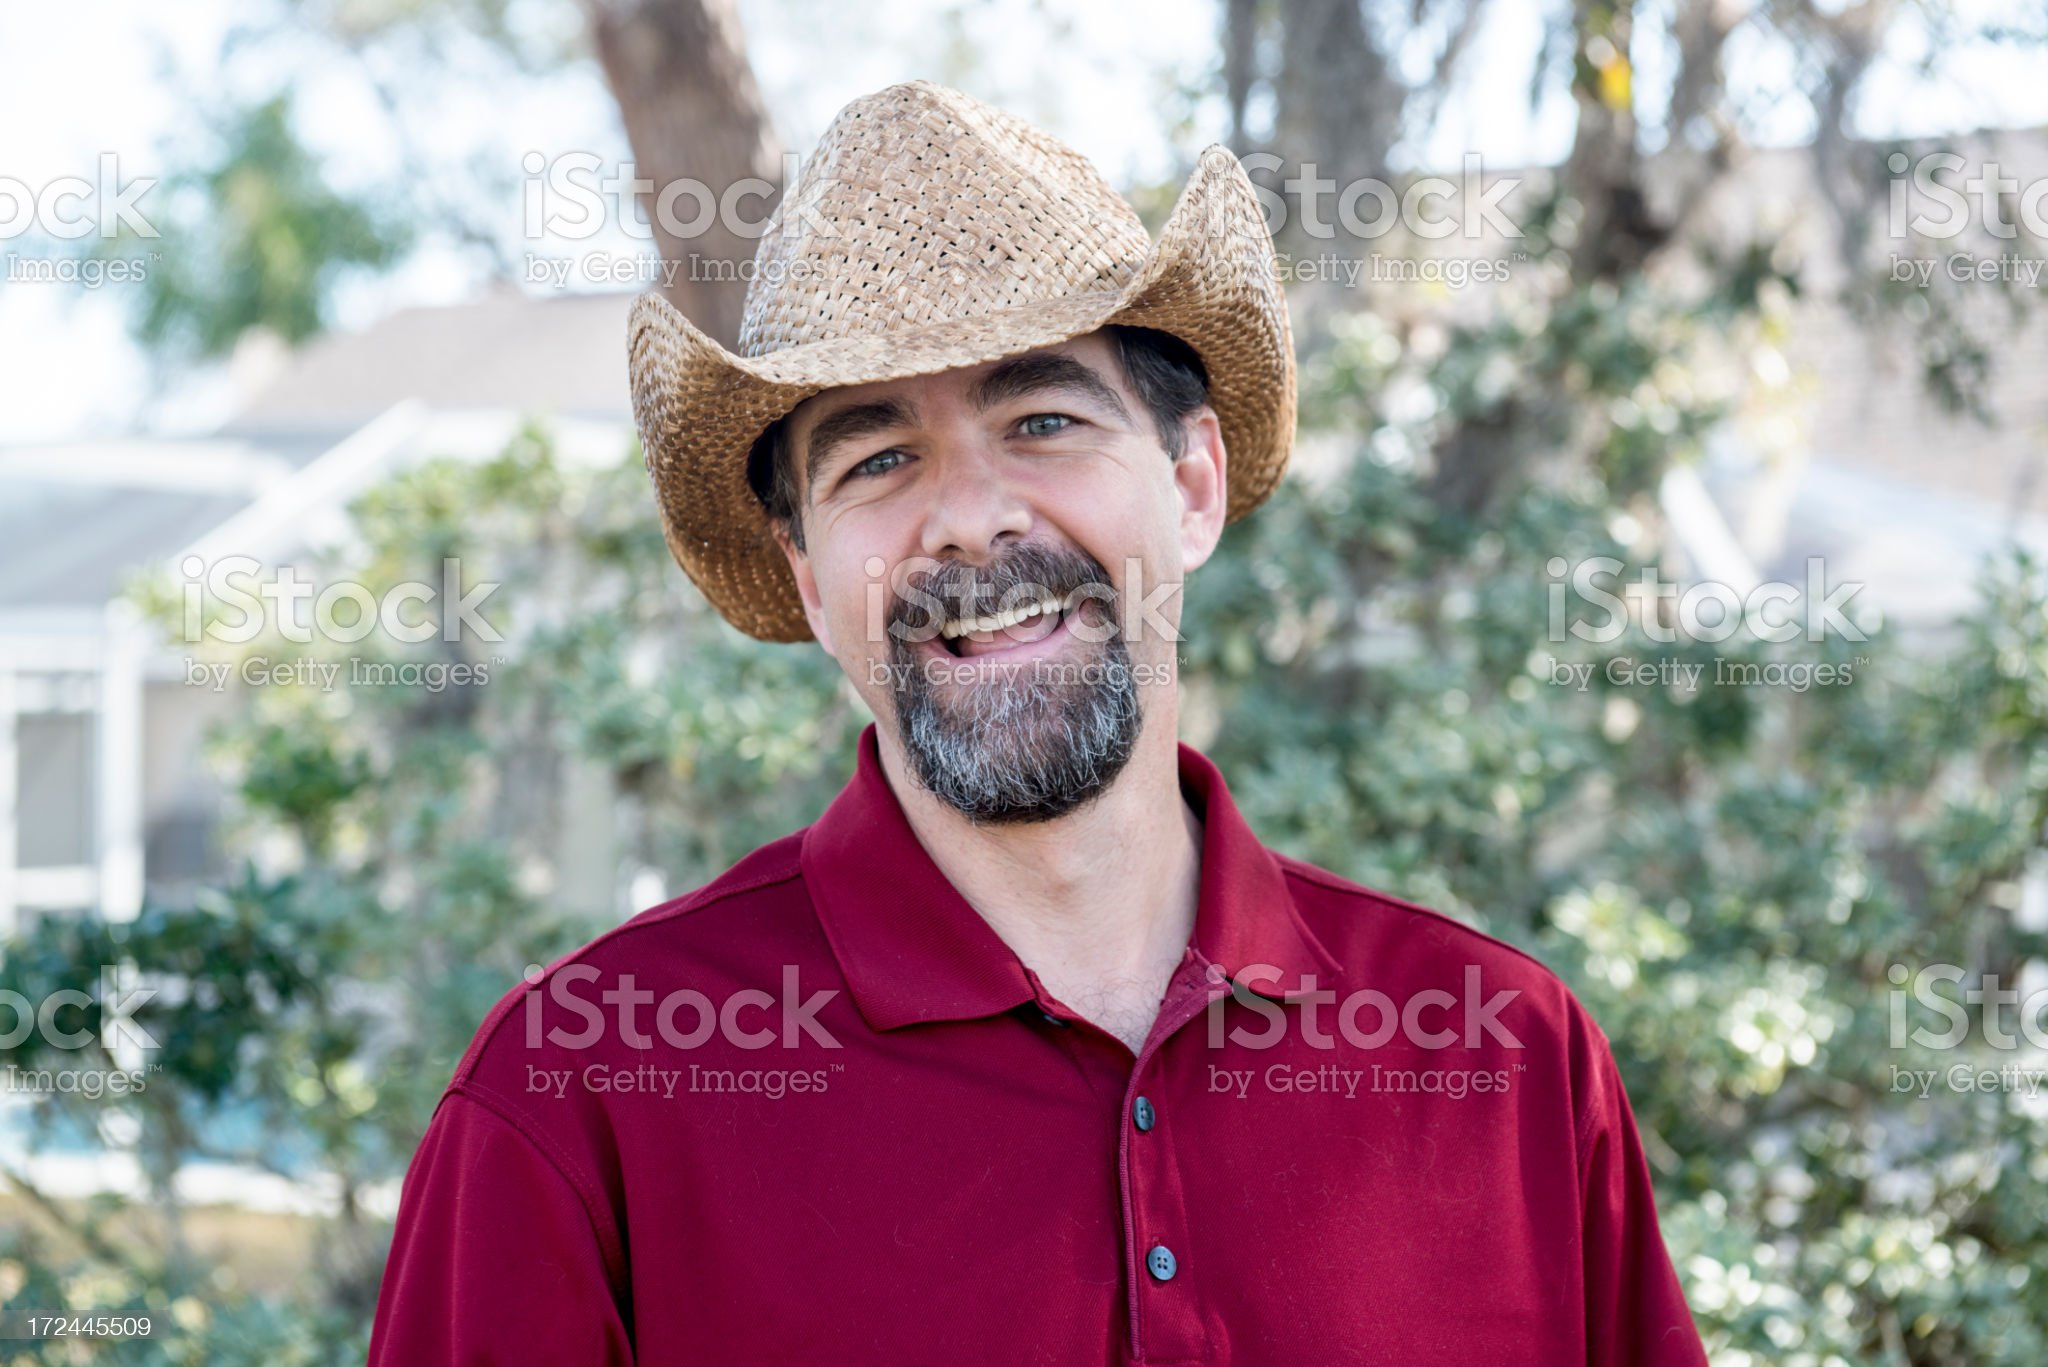 Smiling Man in Straw Hat royalty-free stock photo